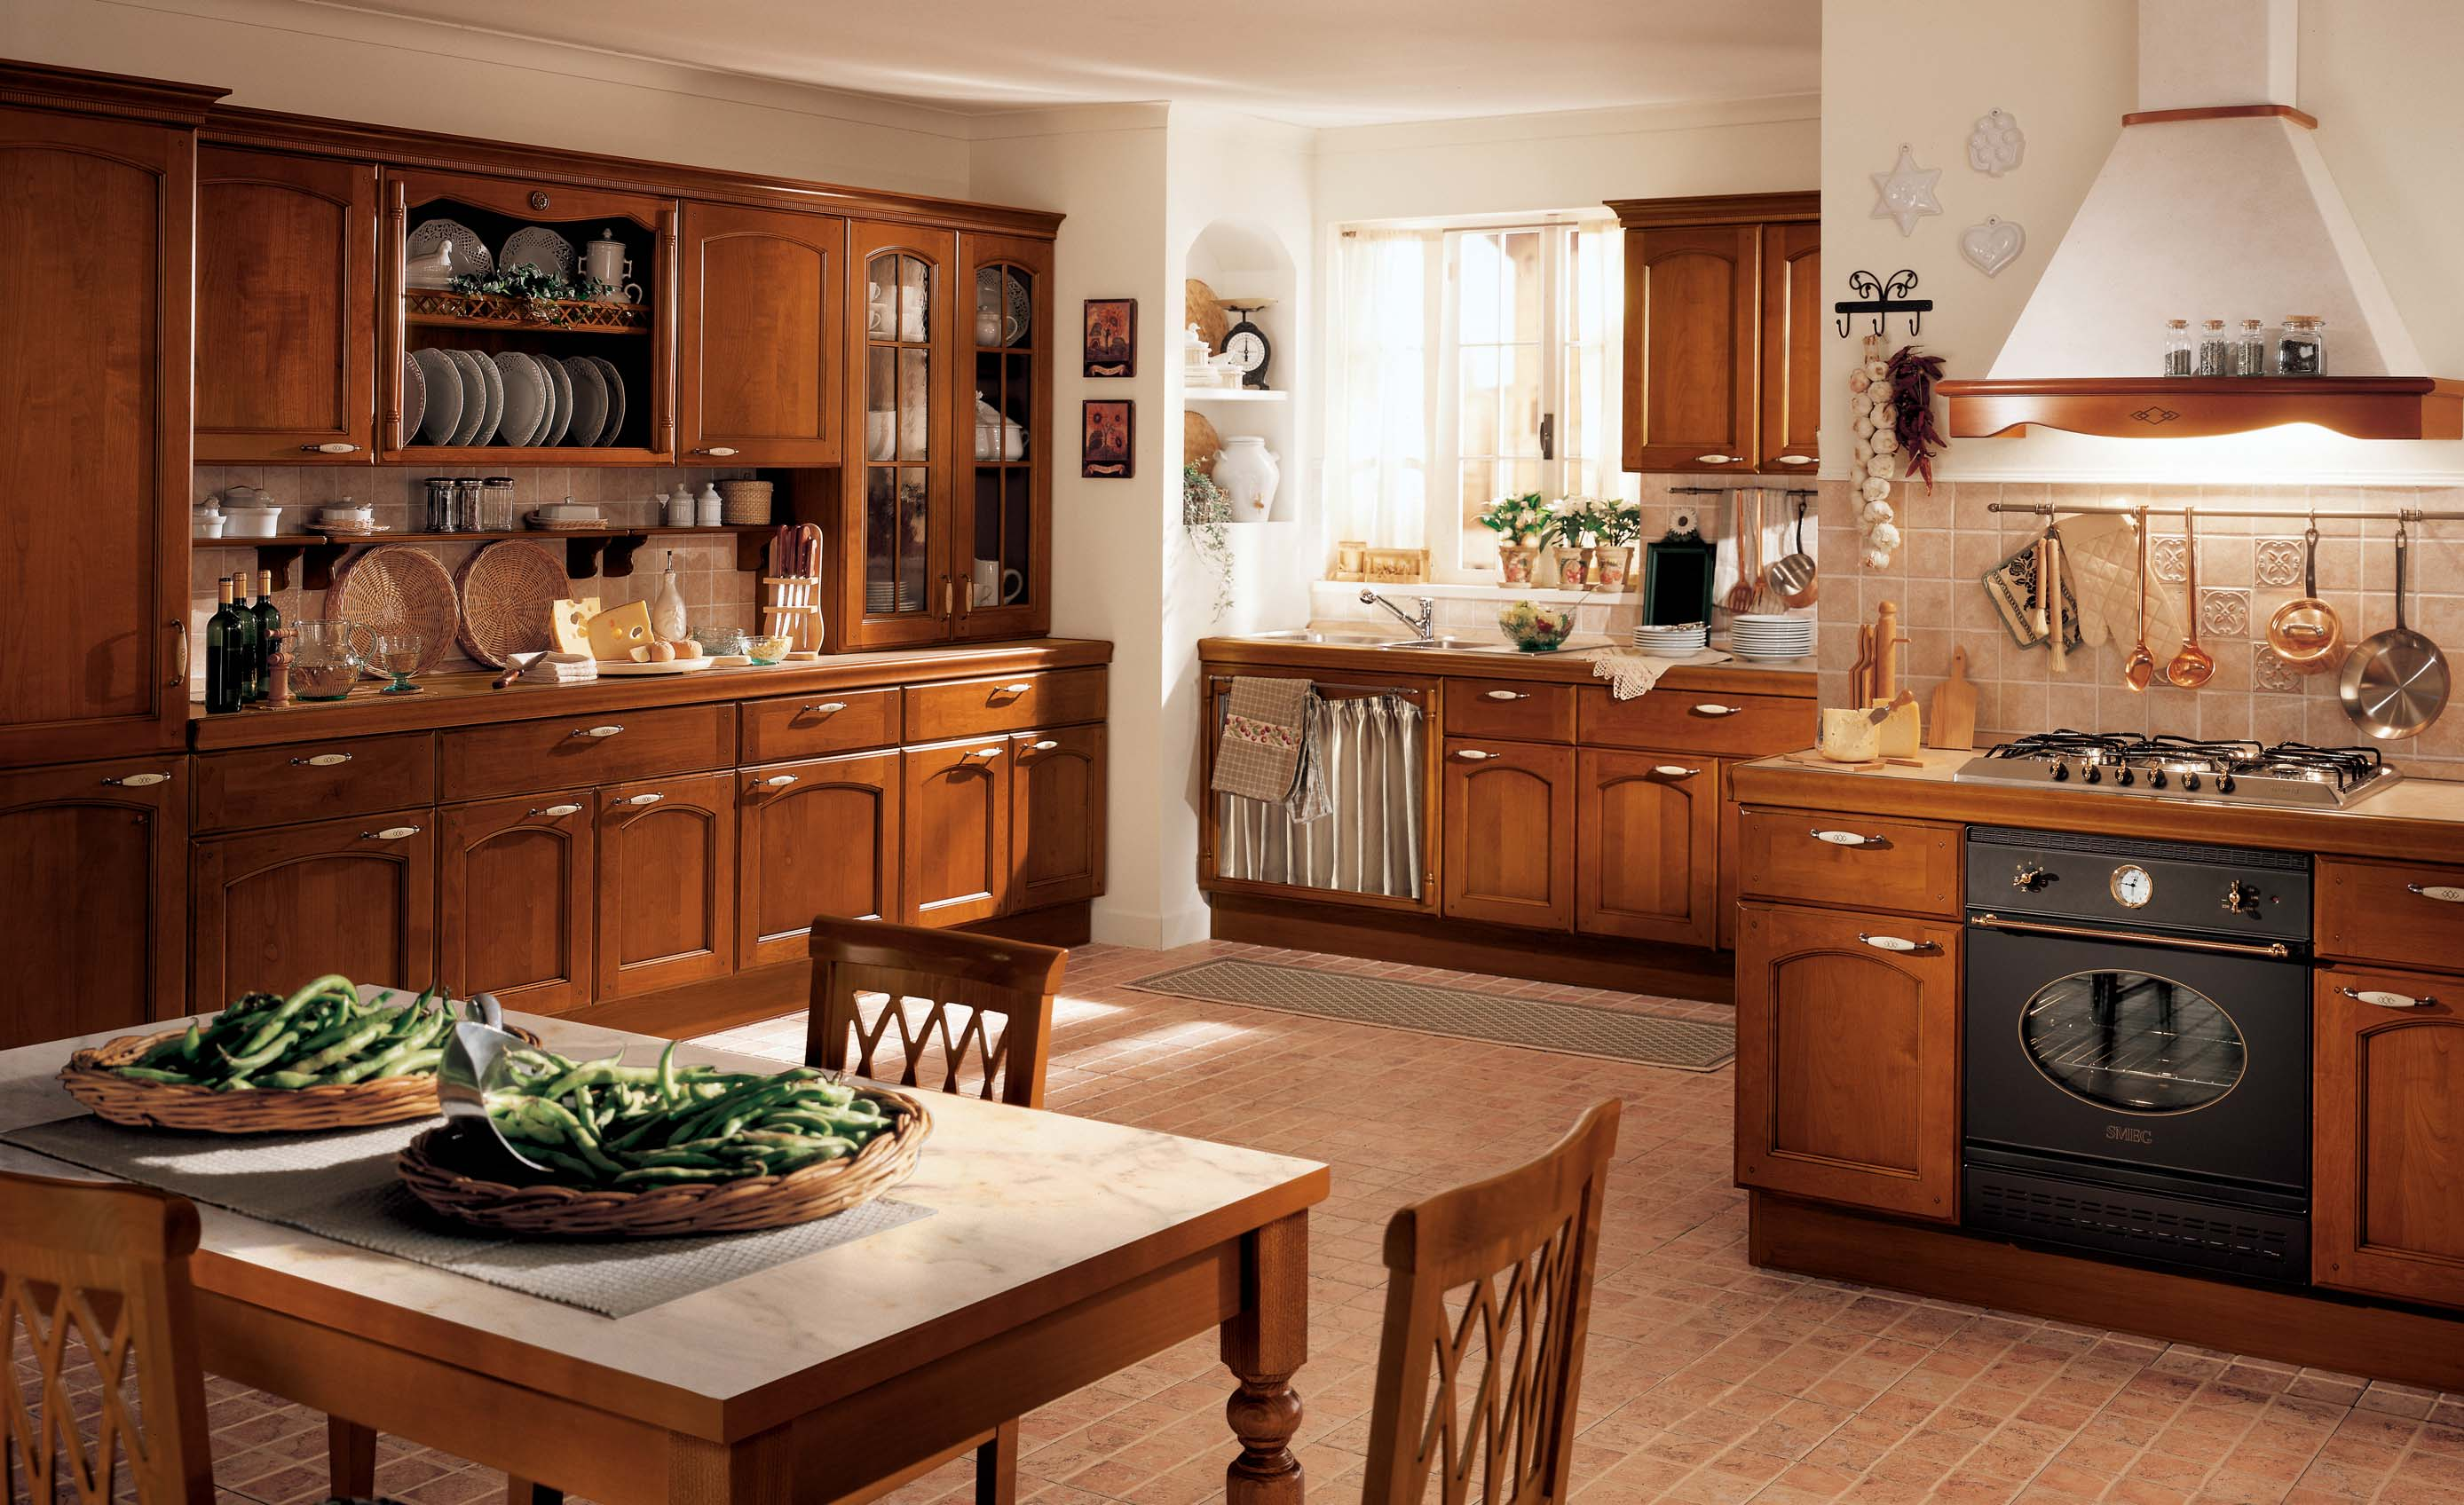 Home depot kitchen design gallery homesfeed Home depot kitchen designs